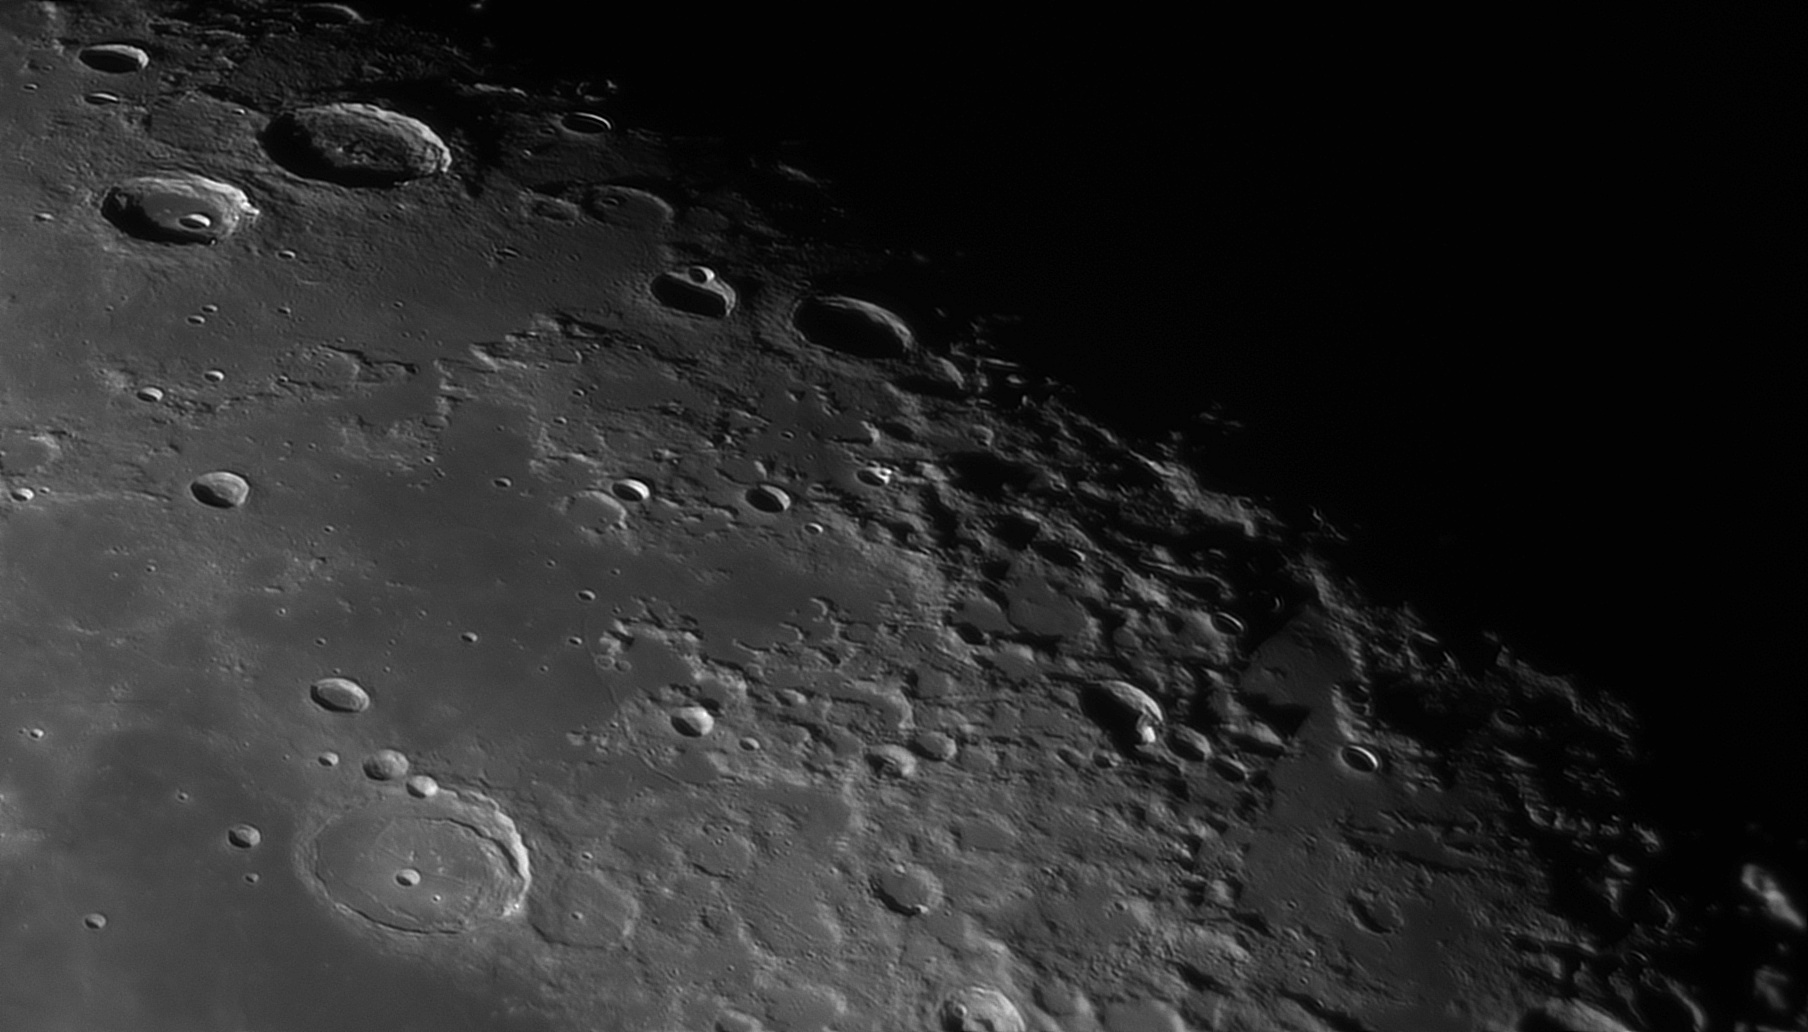 5e56c9bee4ed9_Moon_055807_120220_ZWOASI290MM_IR_742nm_AS_P30_lapl4_ap820_AI_Deconvolution_8.jpg.1df3788a84344f35cd28040a84606663.jpg